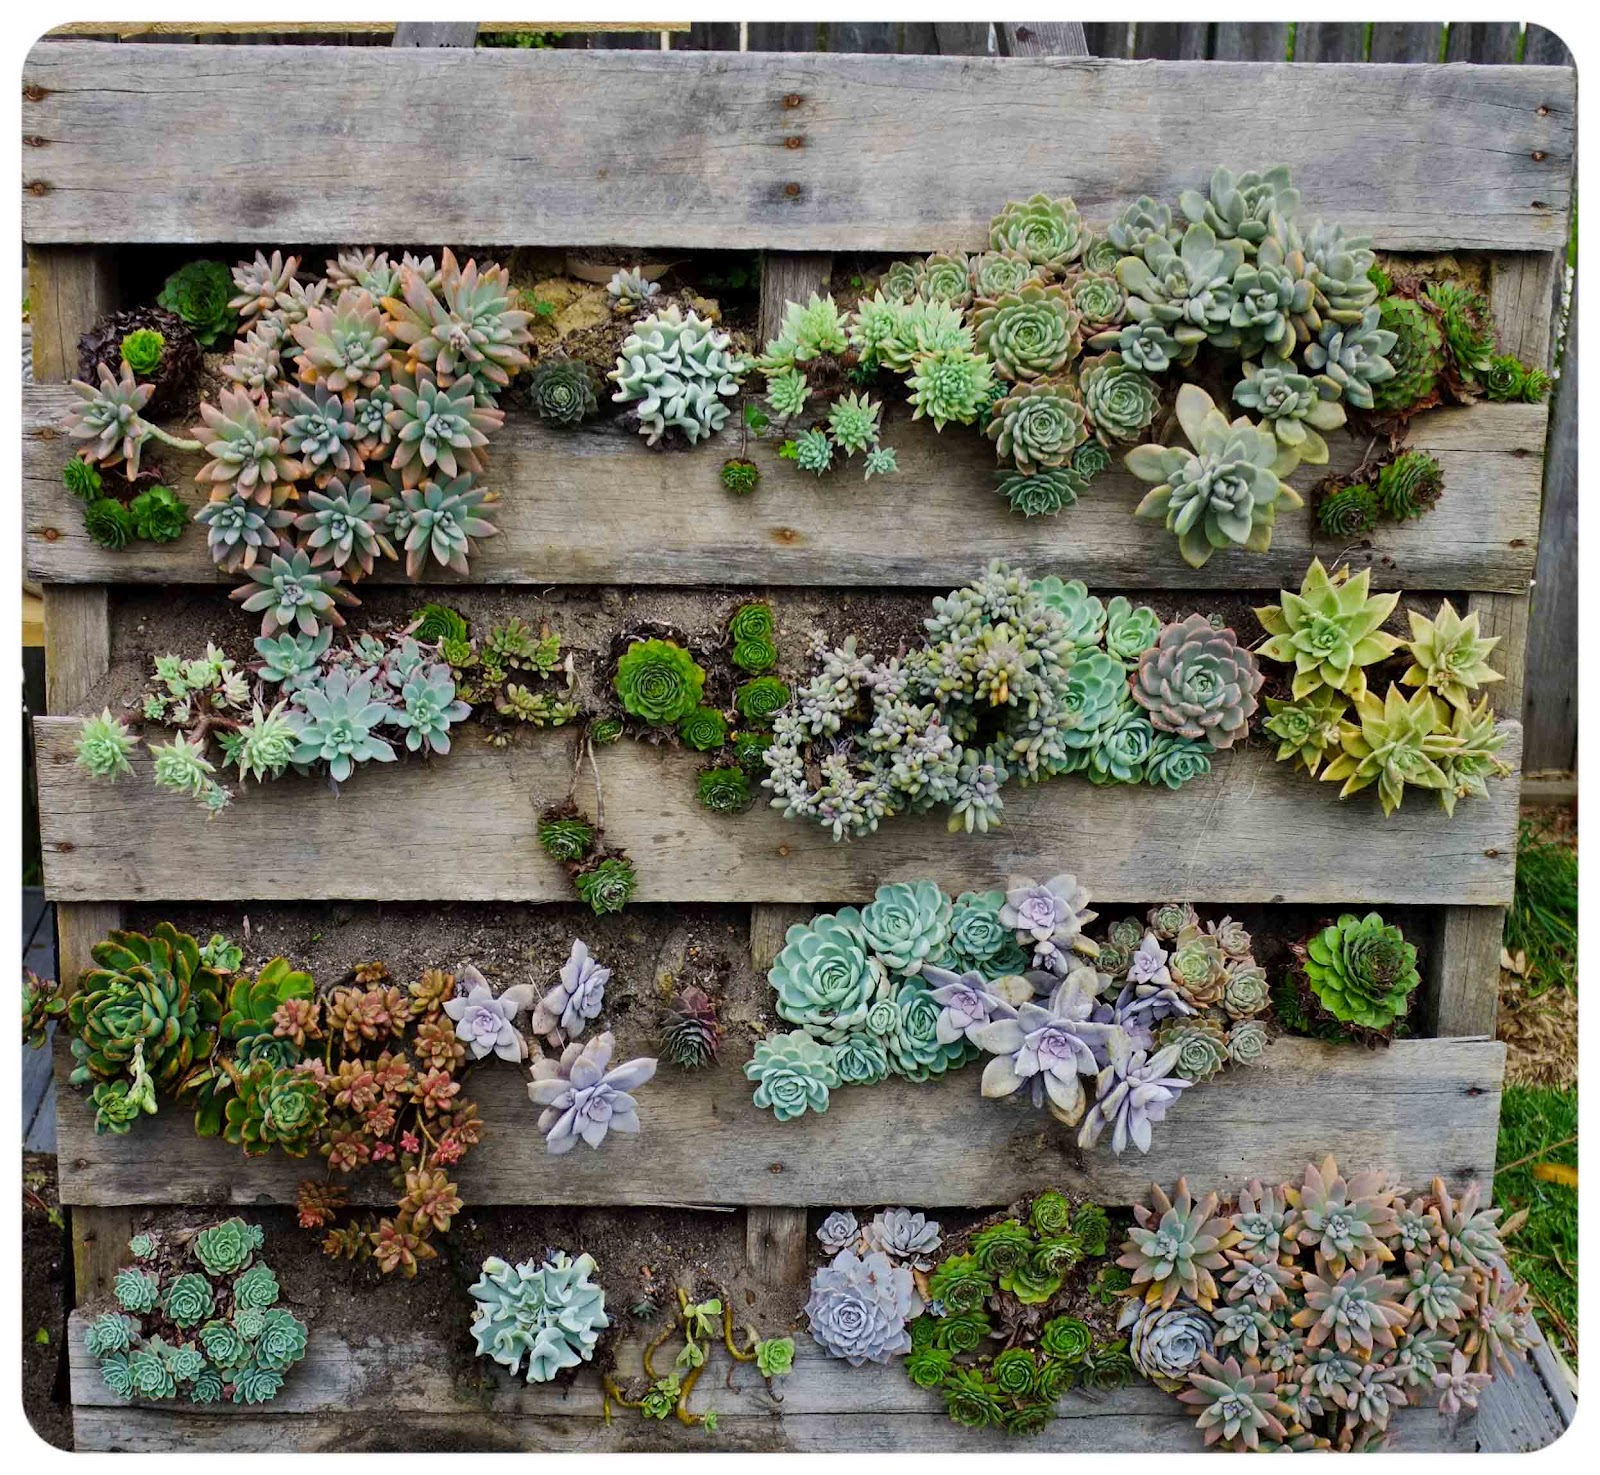 Hanging Wall Garden Diy : The urchin collective diy recycled pallet vertical